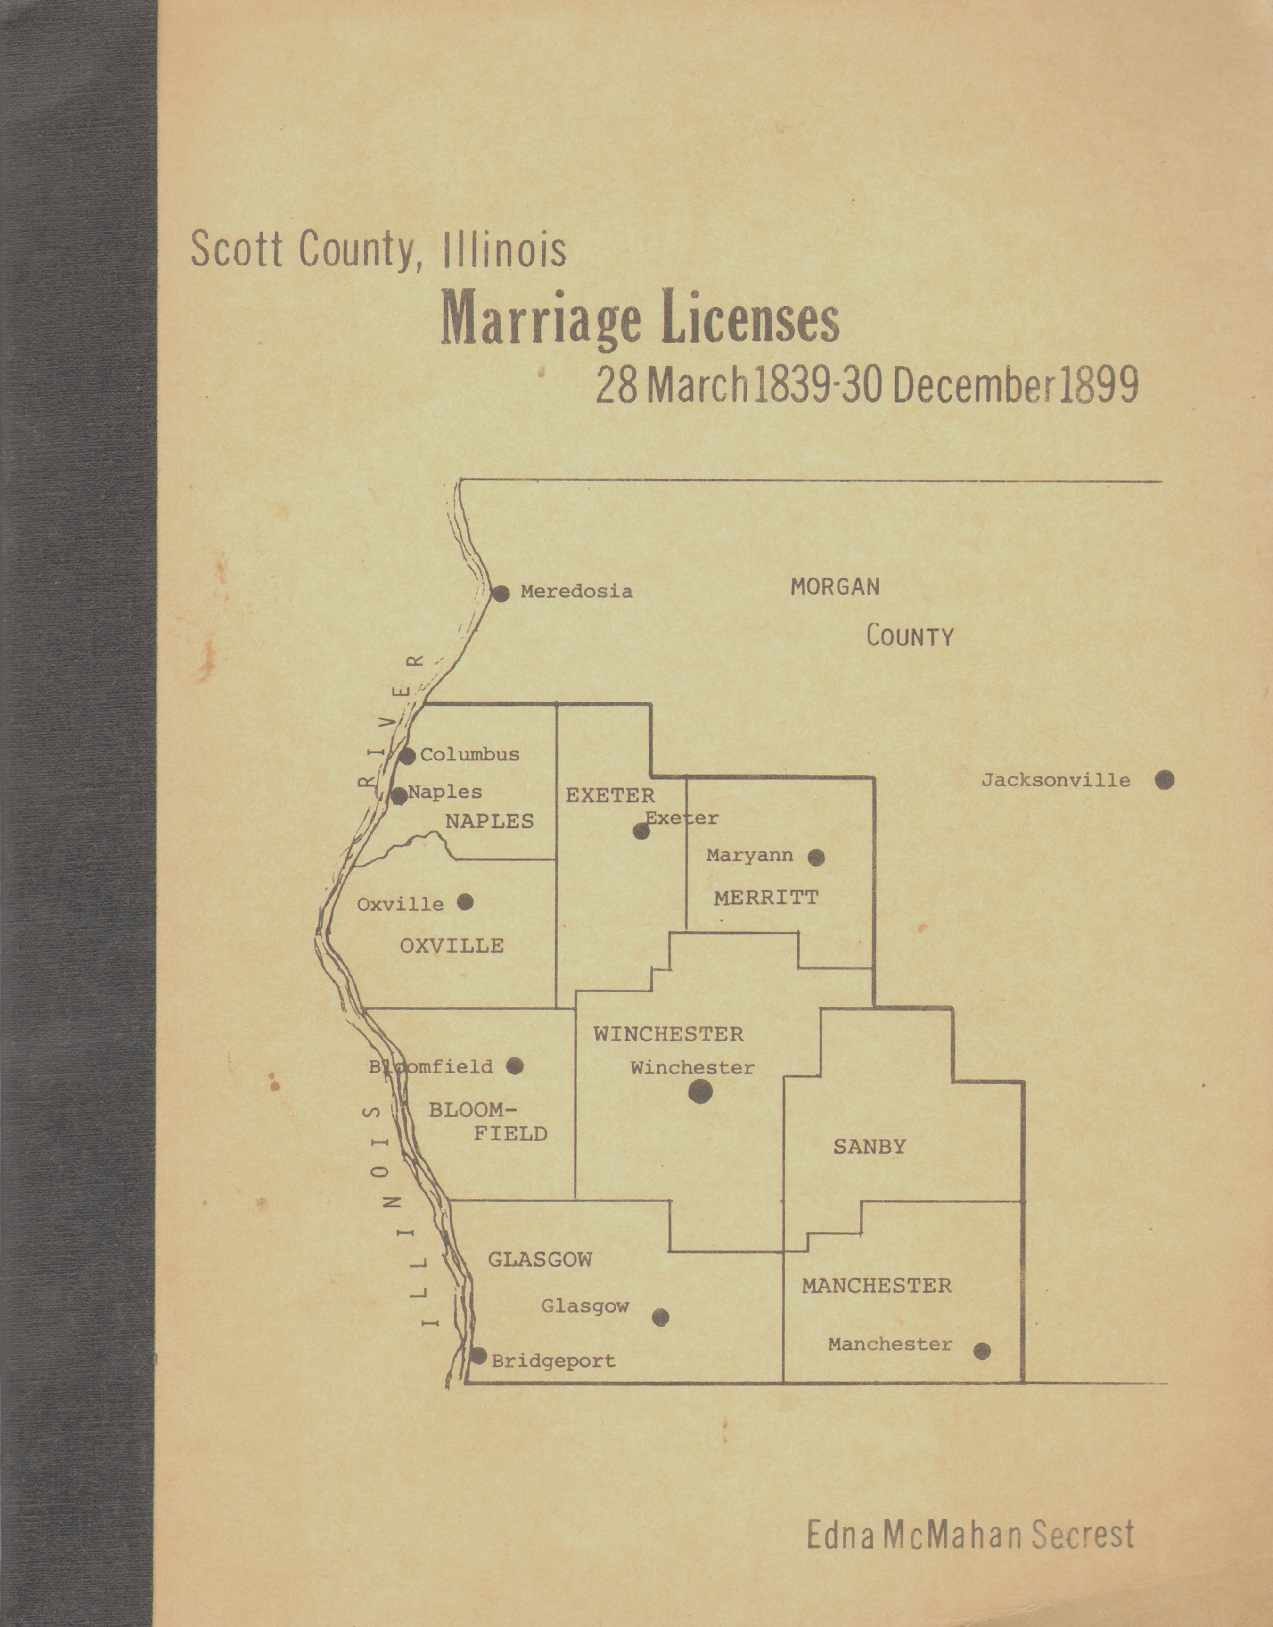 Image for SCOTT COUNTY, ILLINOIS, MARRIAGE LICENSES, 28 MARCH 1839-30 DECEMBER 1899